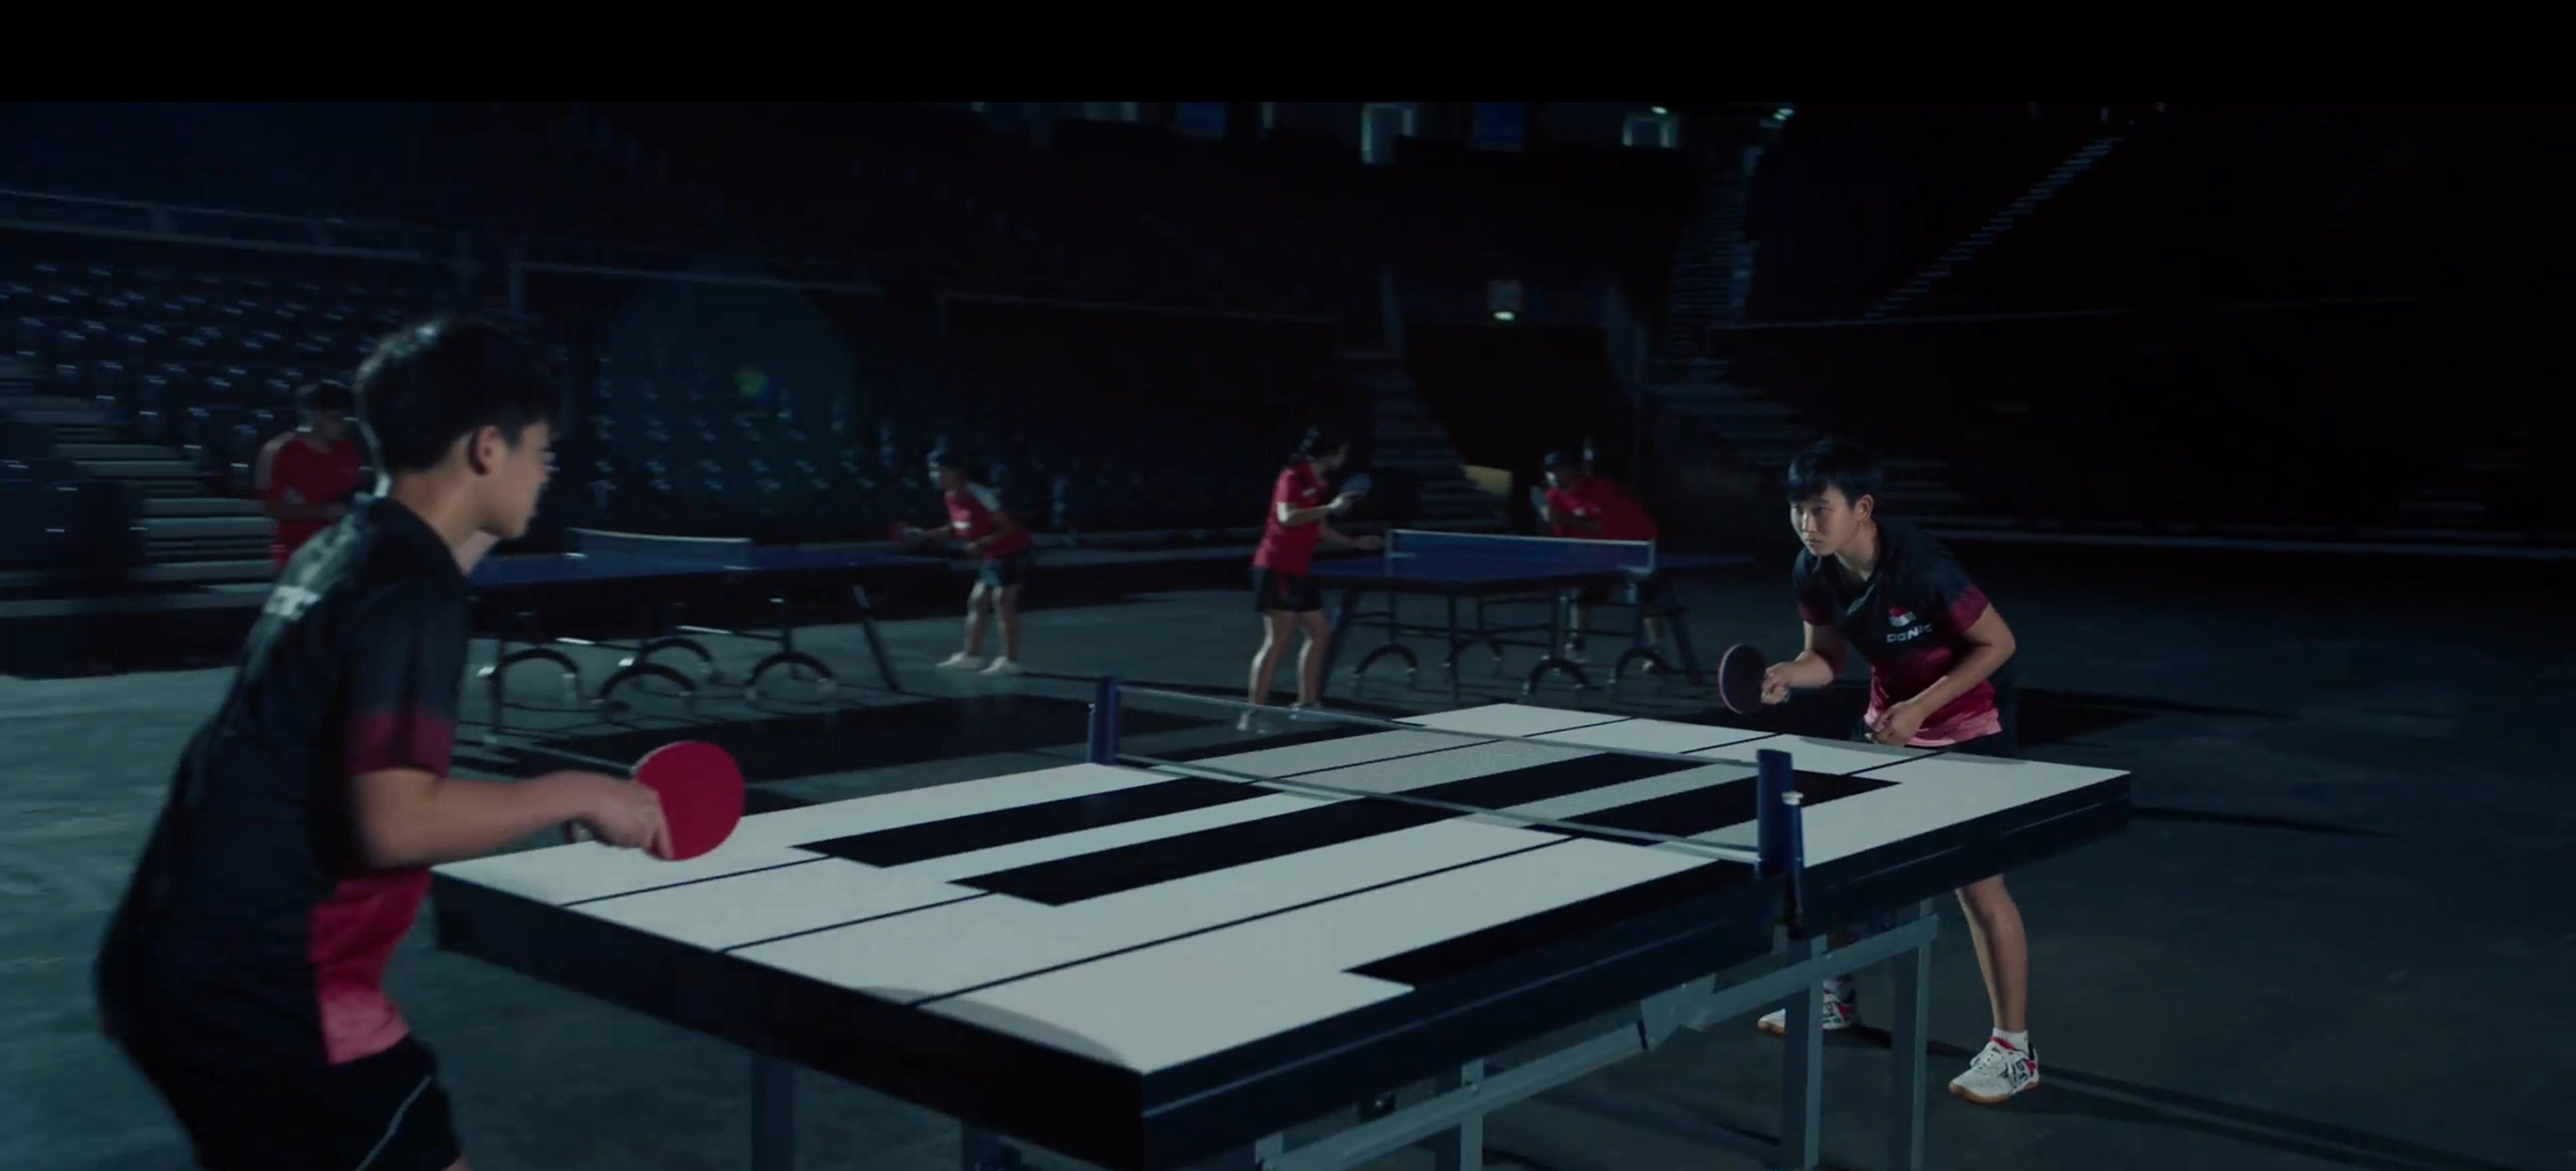 Latest One Day video serves as Tribute to TeamSG Athletes in Tokyo and a rallying call for National Day!